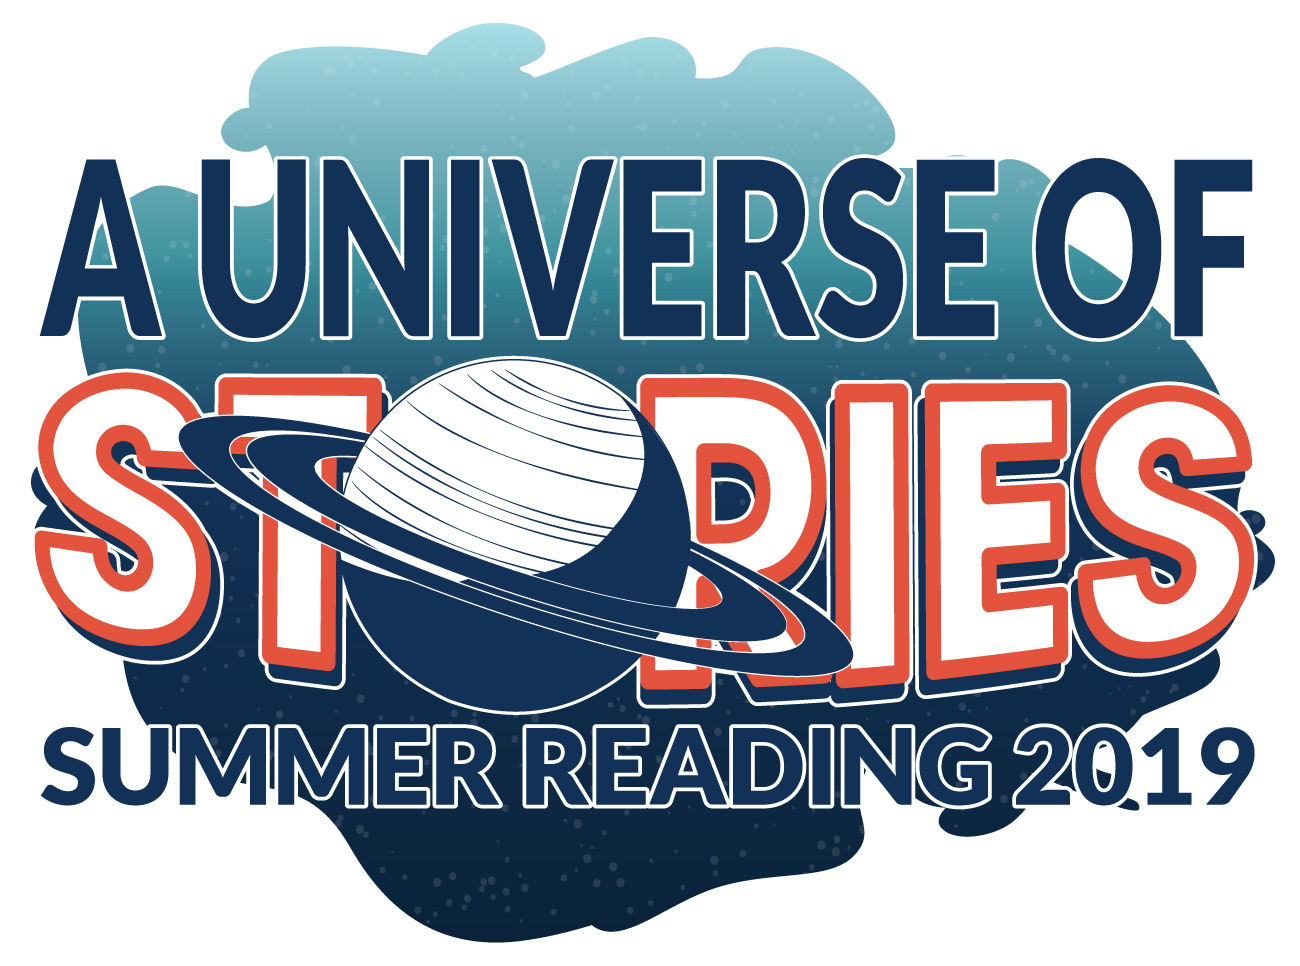 A Universe of Stories; For All Ages; June 1 - July 31